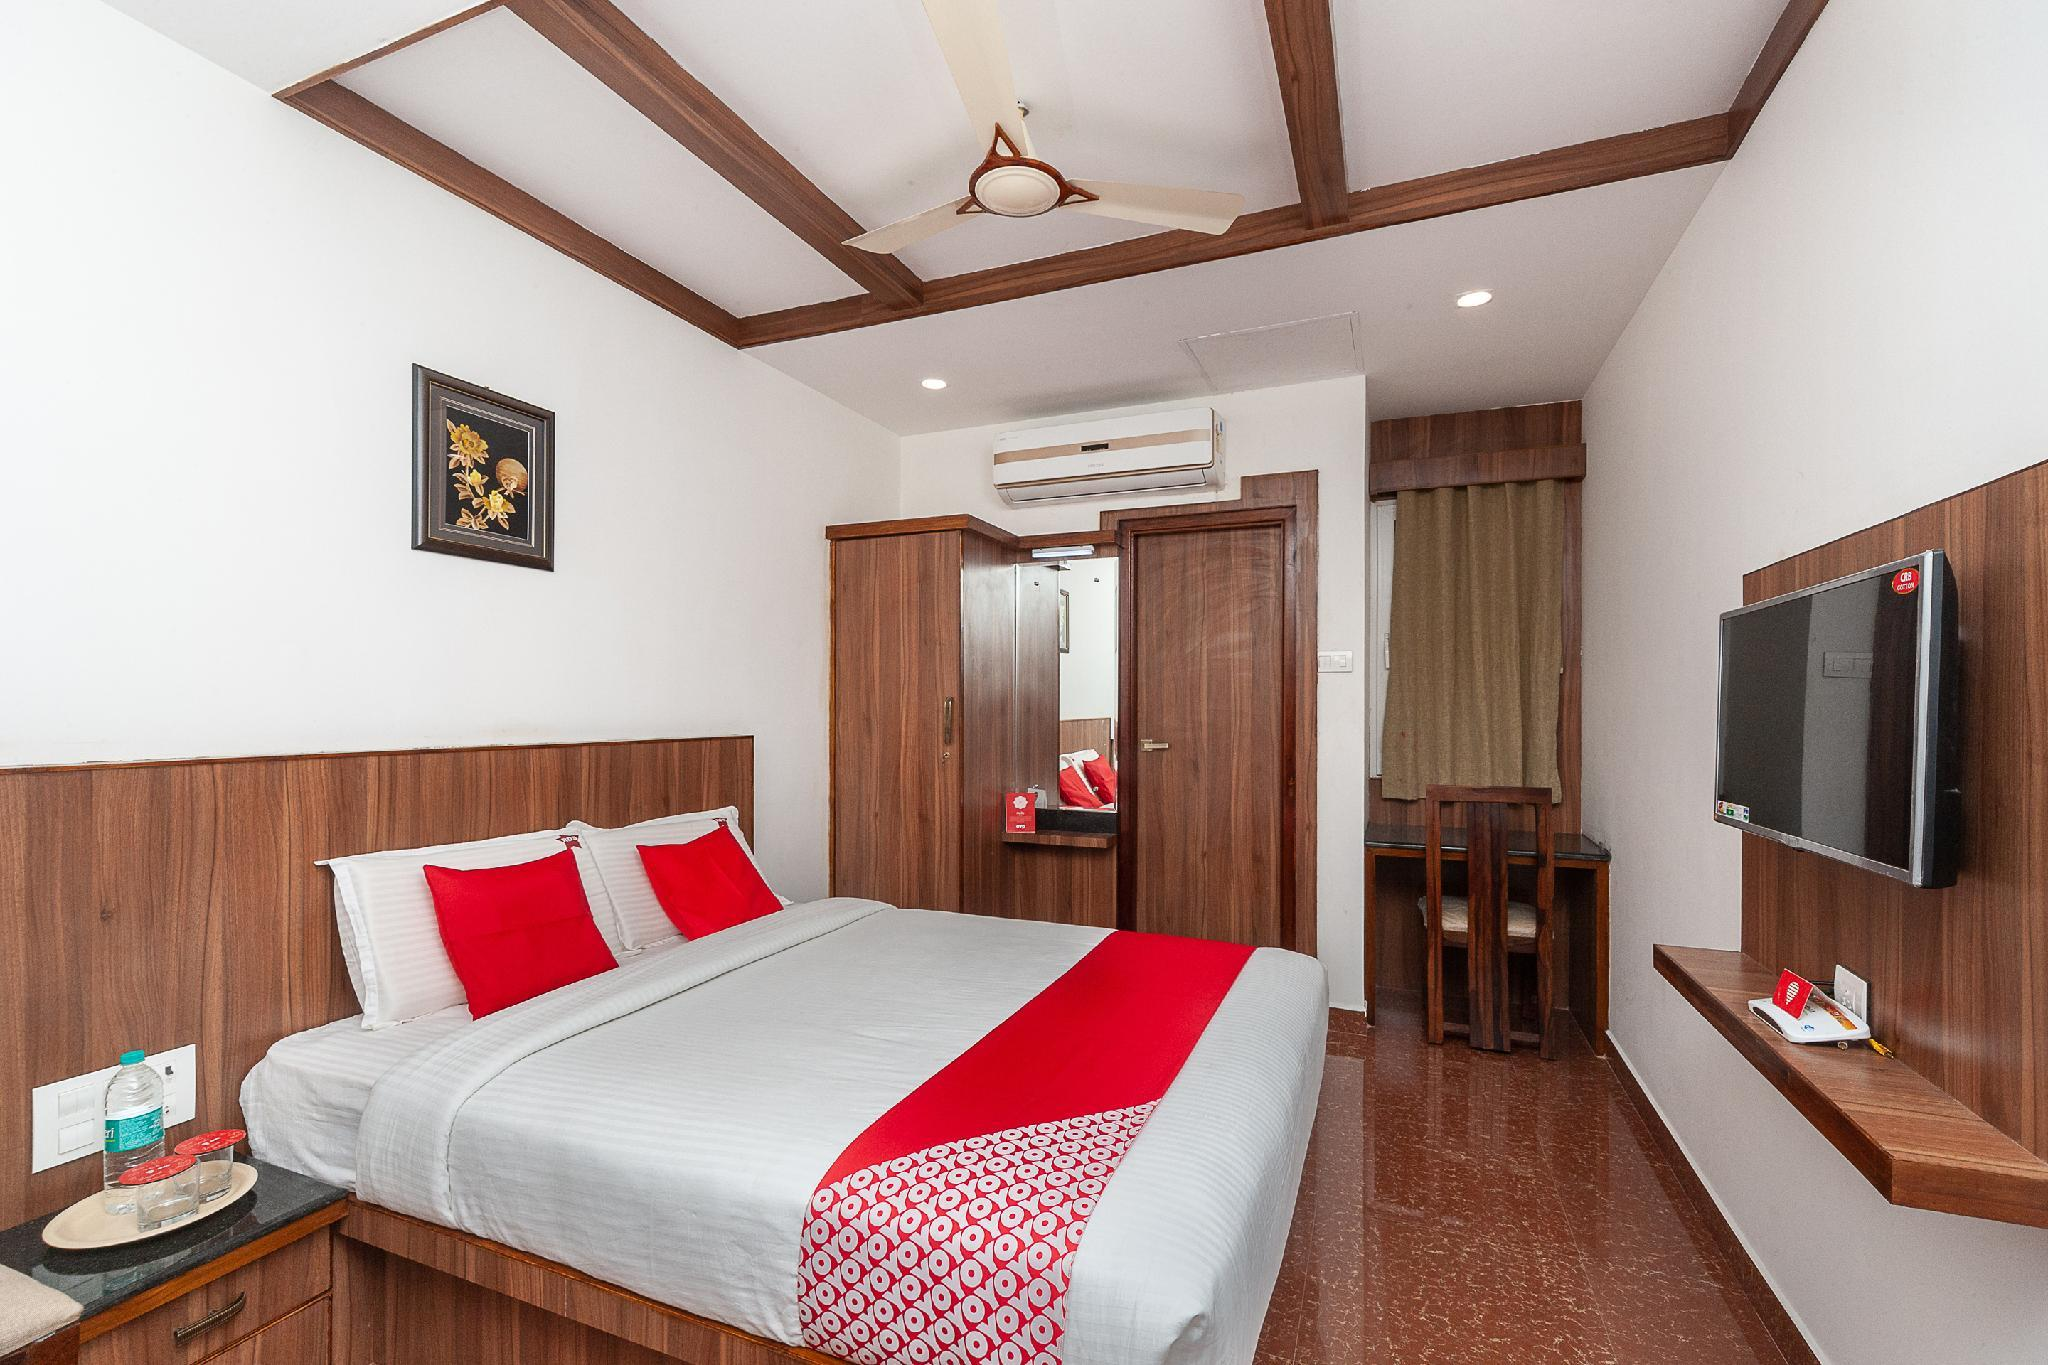 OYO 29859 Rds Guest House